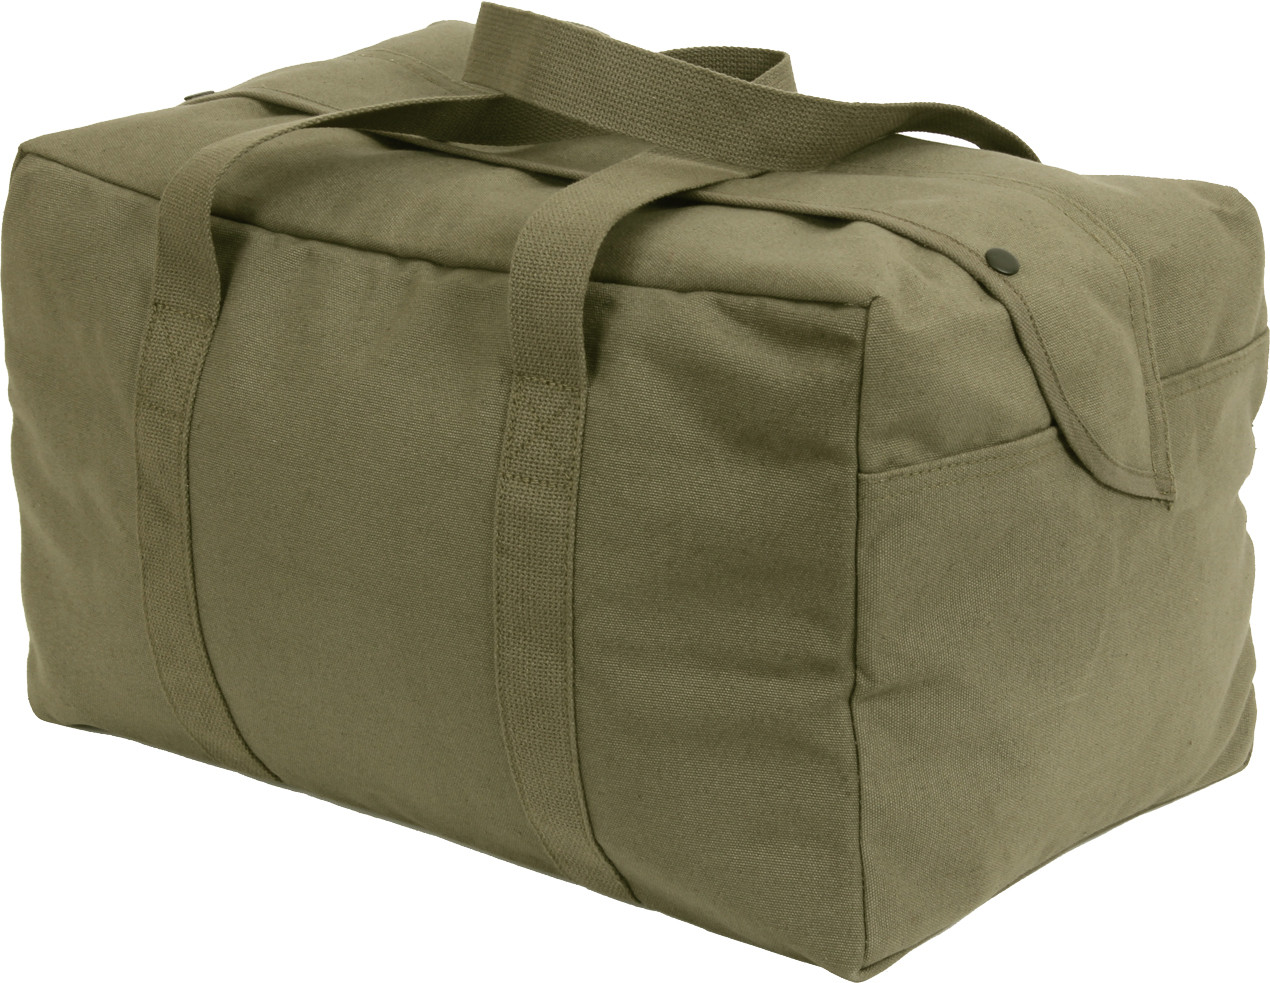 cb28bf5604be Olive Drab Small Parachute Tactical Cargo Bag